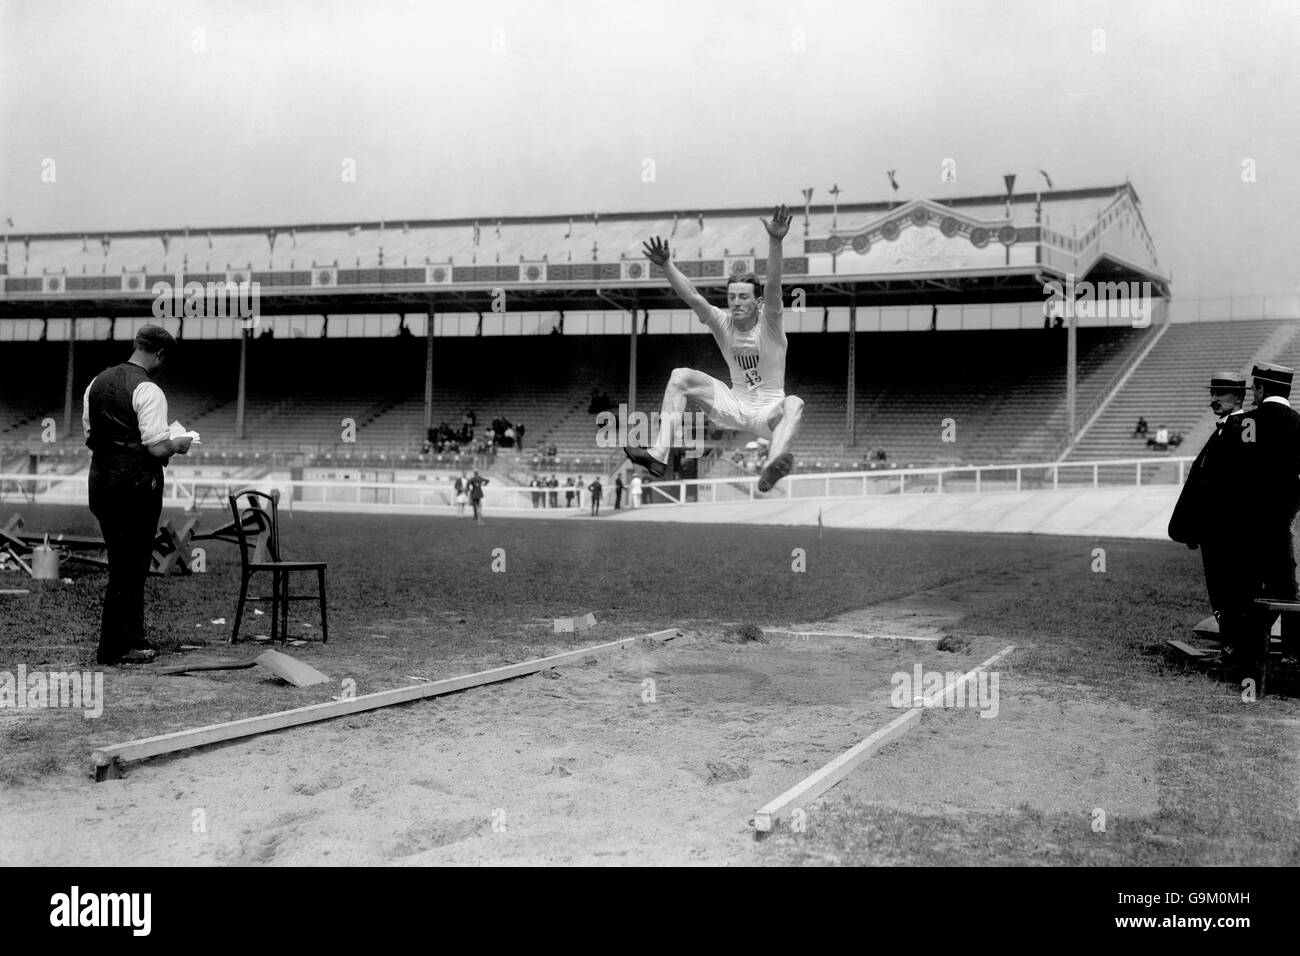 Athletics - London Olympic Games 1908 - Long Jump - Final - White City Stock Photo